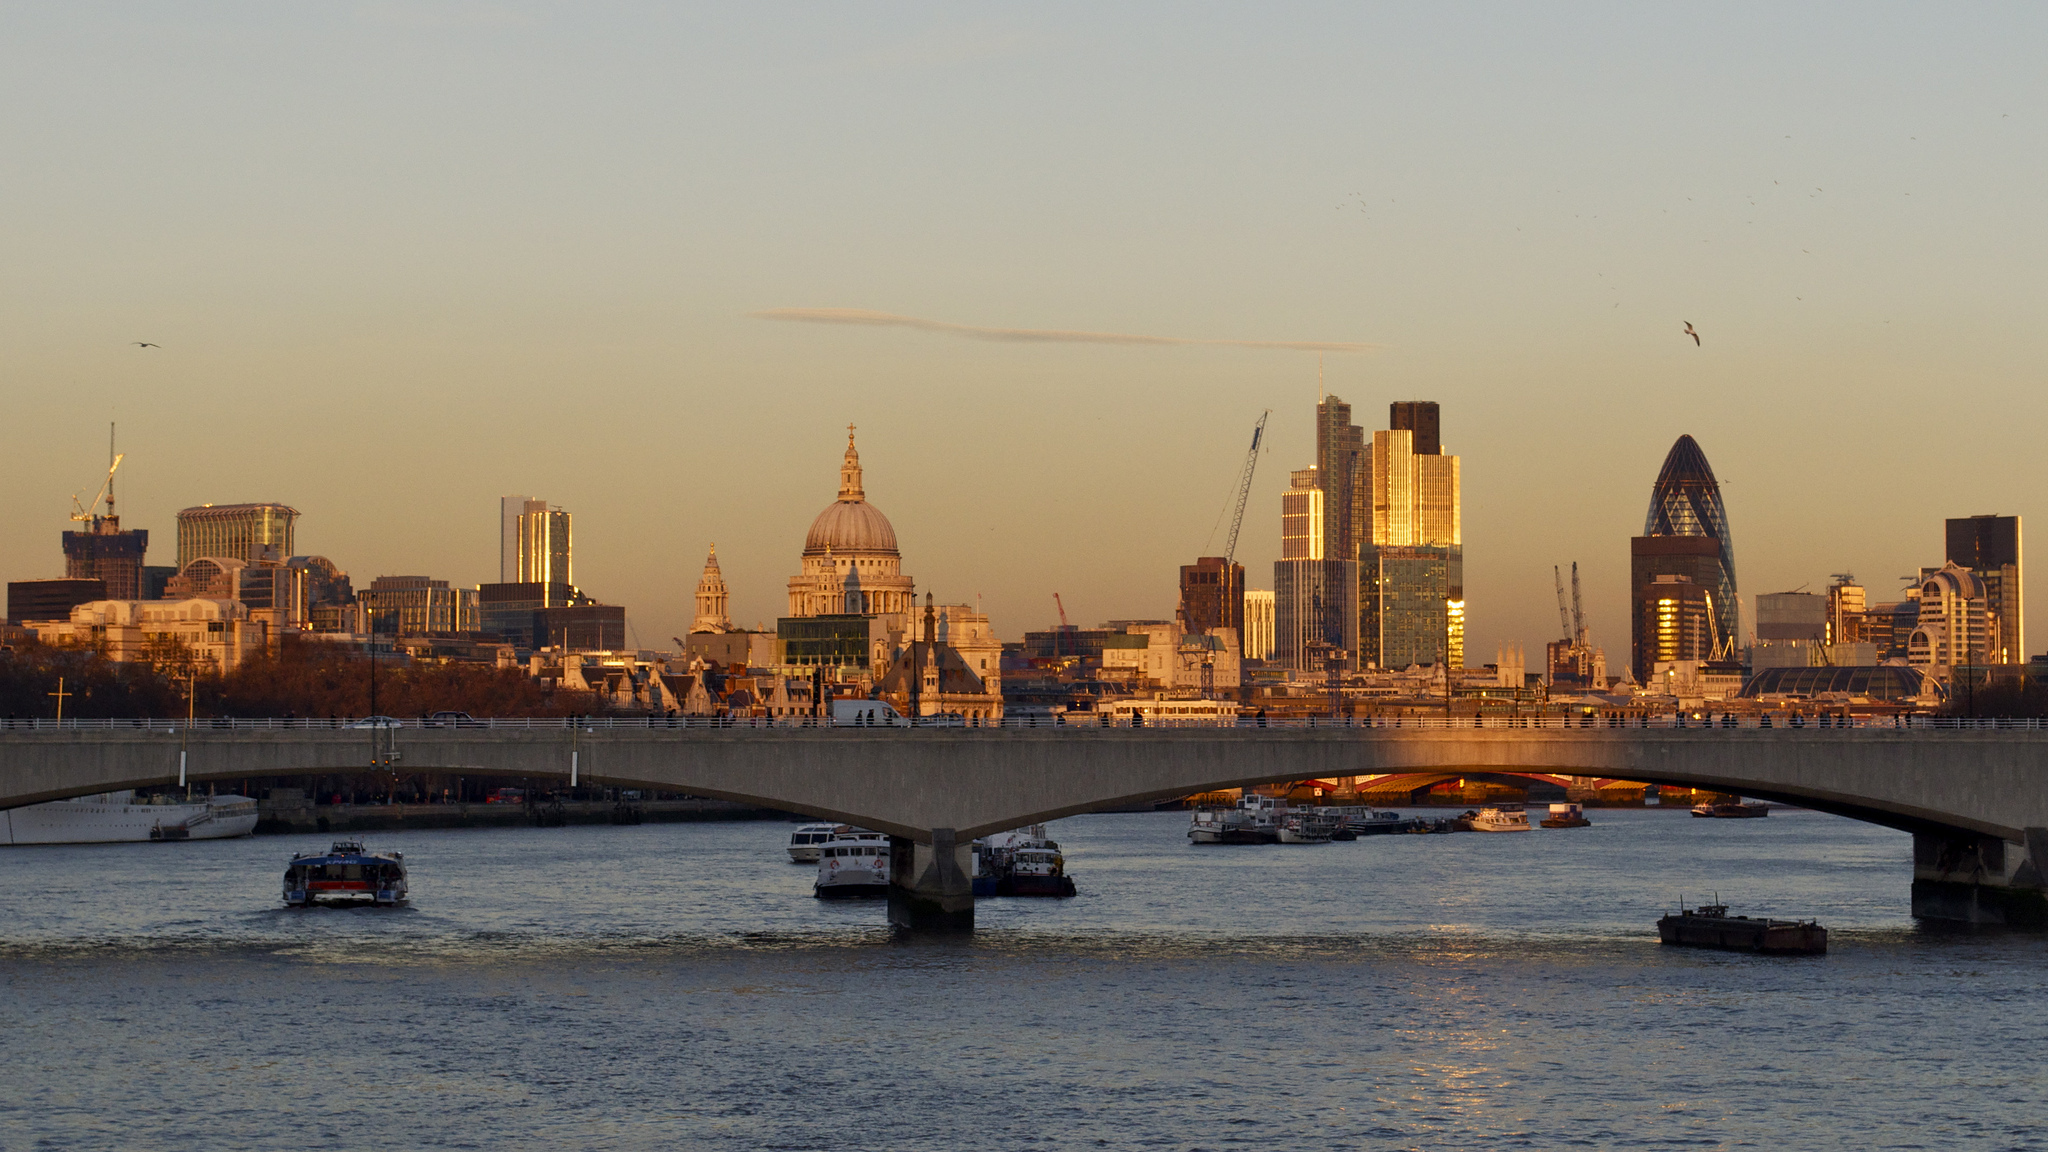 Sunset over Waterloo Bridge. Photography: Steve Walker